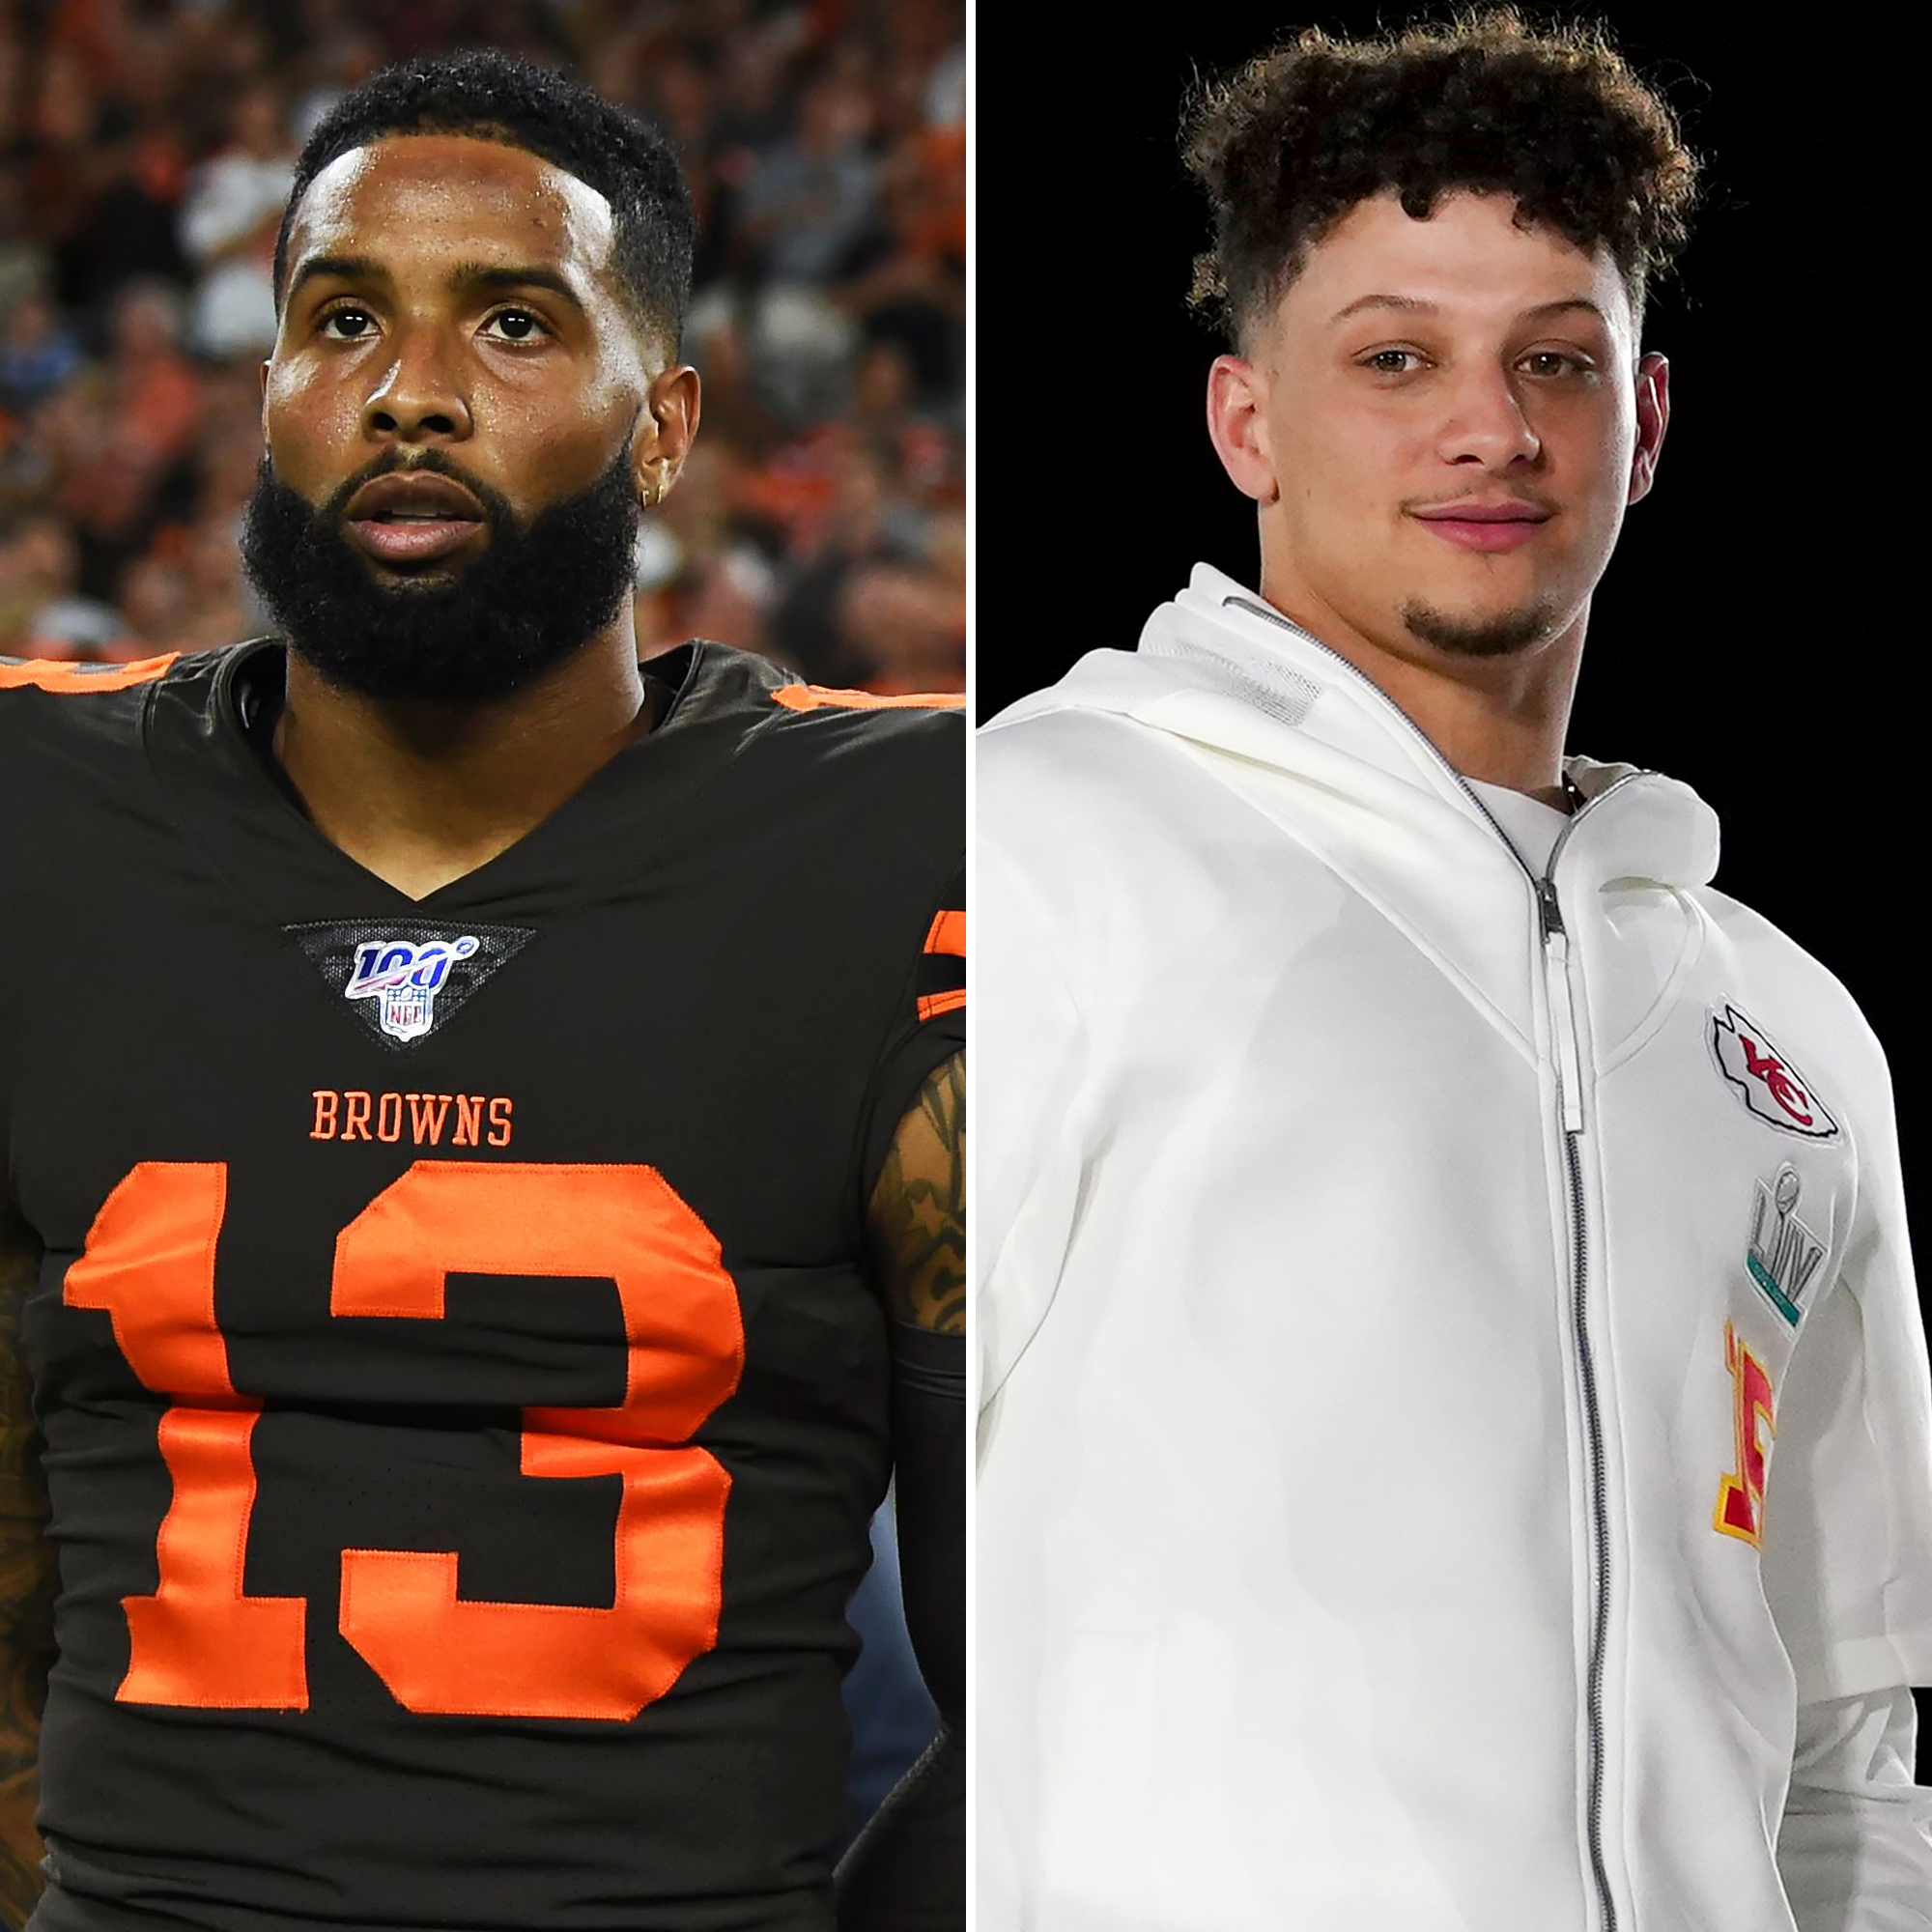 Odell Beckham Jr. Patrick Mahomes More NFL Stars Release Powerful Video Condemning Racism